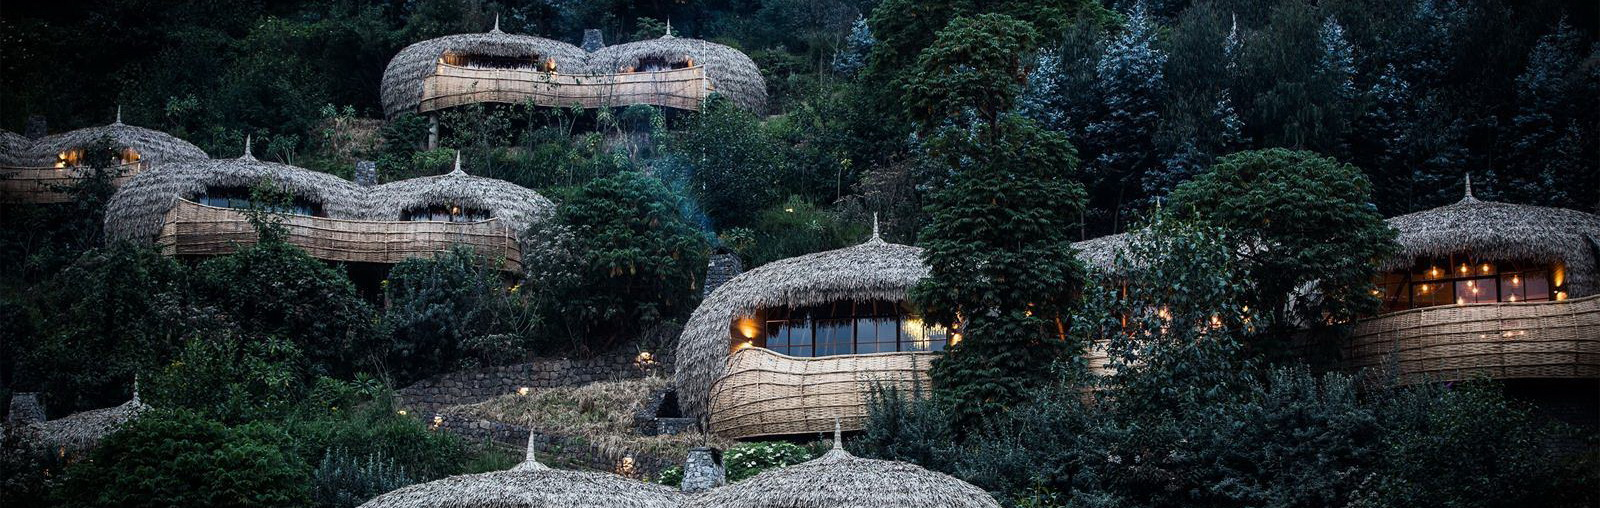 safari rwanda bisate lodge cen credit david crookes